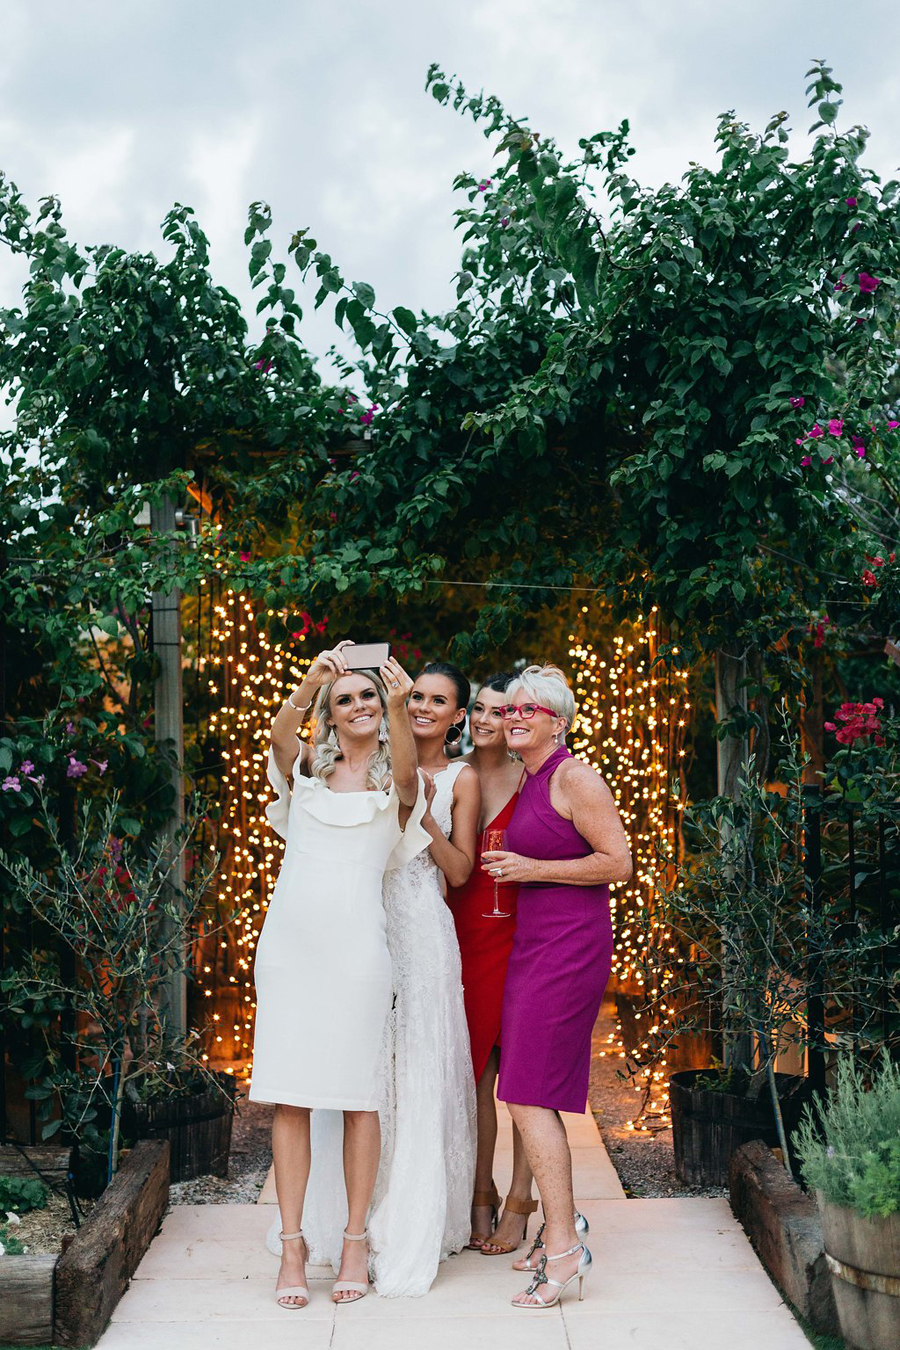 tweed-coast-wedding-venue-osteria-casuarina-real-wedding-amy-alex040.jpg